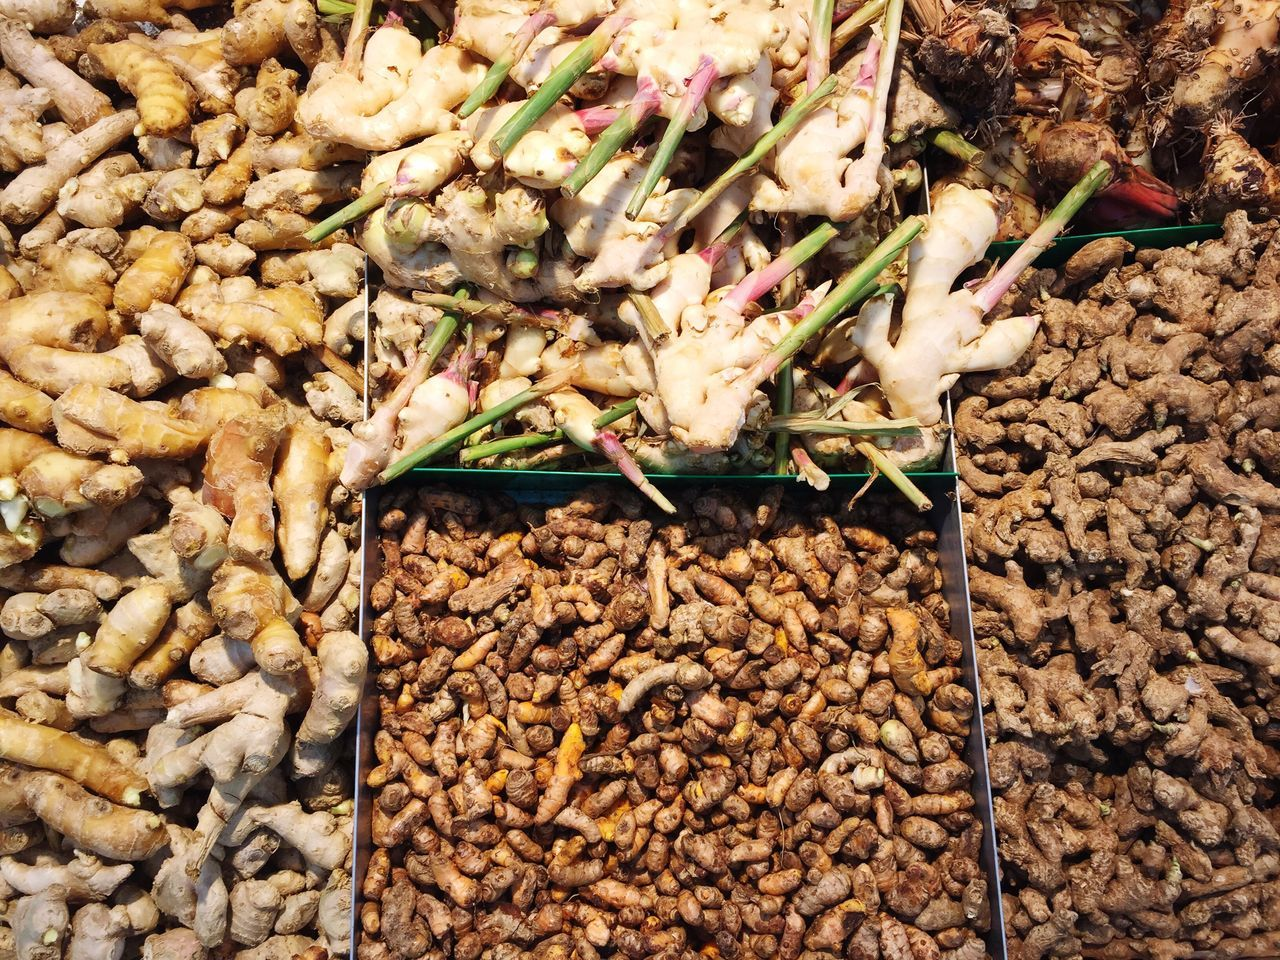 Into the spices Food High Angle View Freshness Food And Drink Healthy Eating No People Outdoors Nature Day DryMarket Market Market Stall Supermarket Spices Of The World Tumeric Ginger